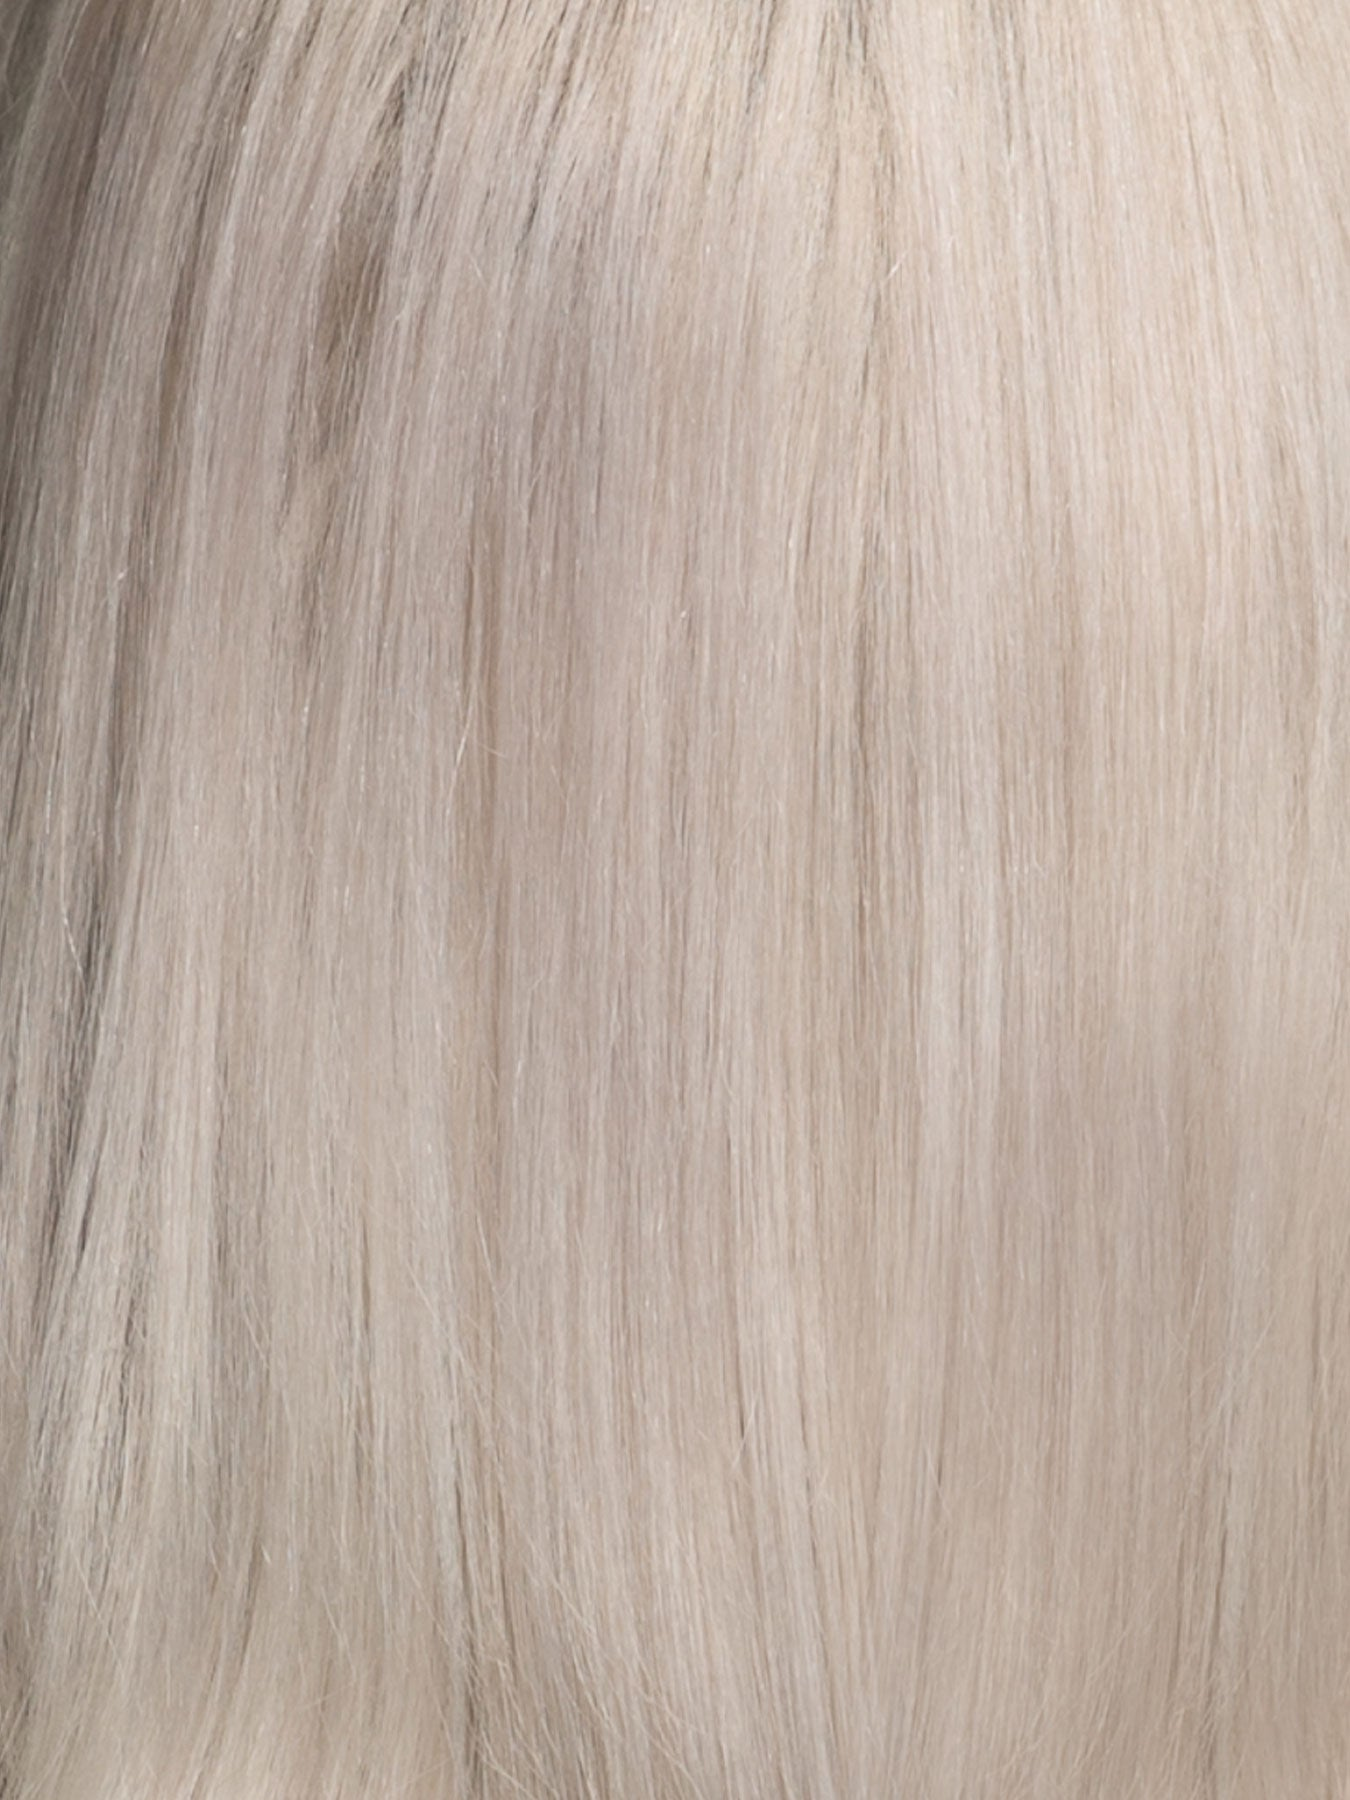 "12 Piece Clip In HD Fibre Hair Extensions - 16"" / 22"" - Platinum (1572147658832)"